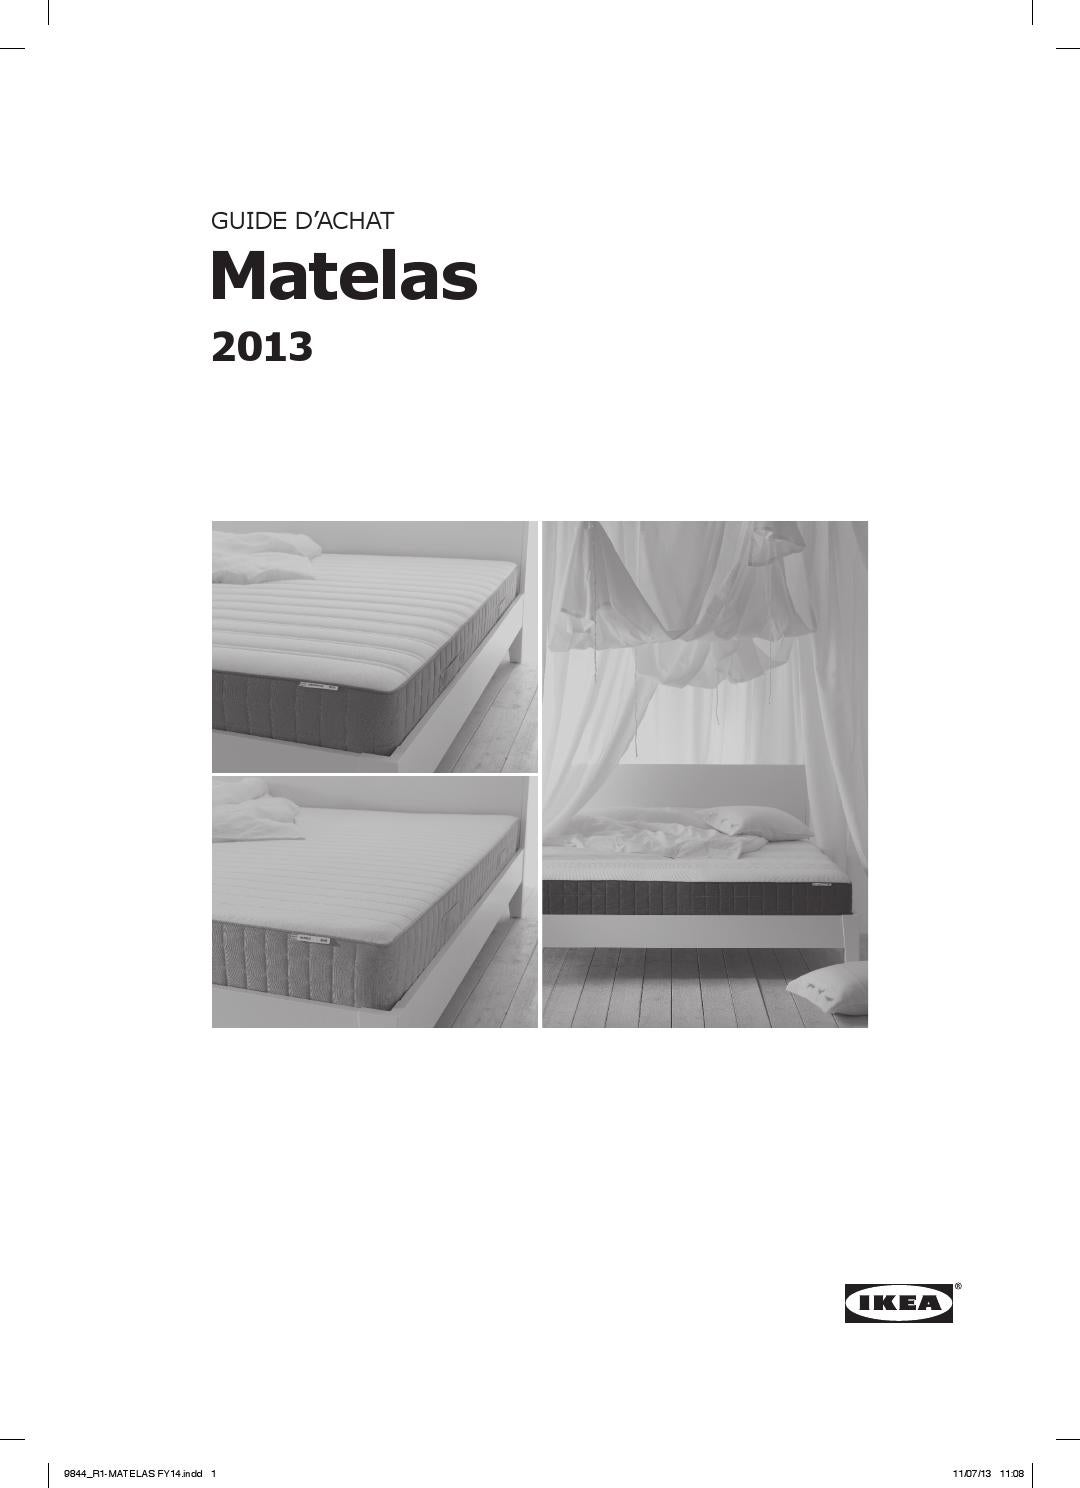 sultan ikea matelas espevr support matelas with sultan. Black Bedroom Furniture Sets. Home Design Ideas